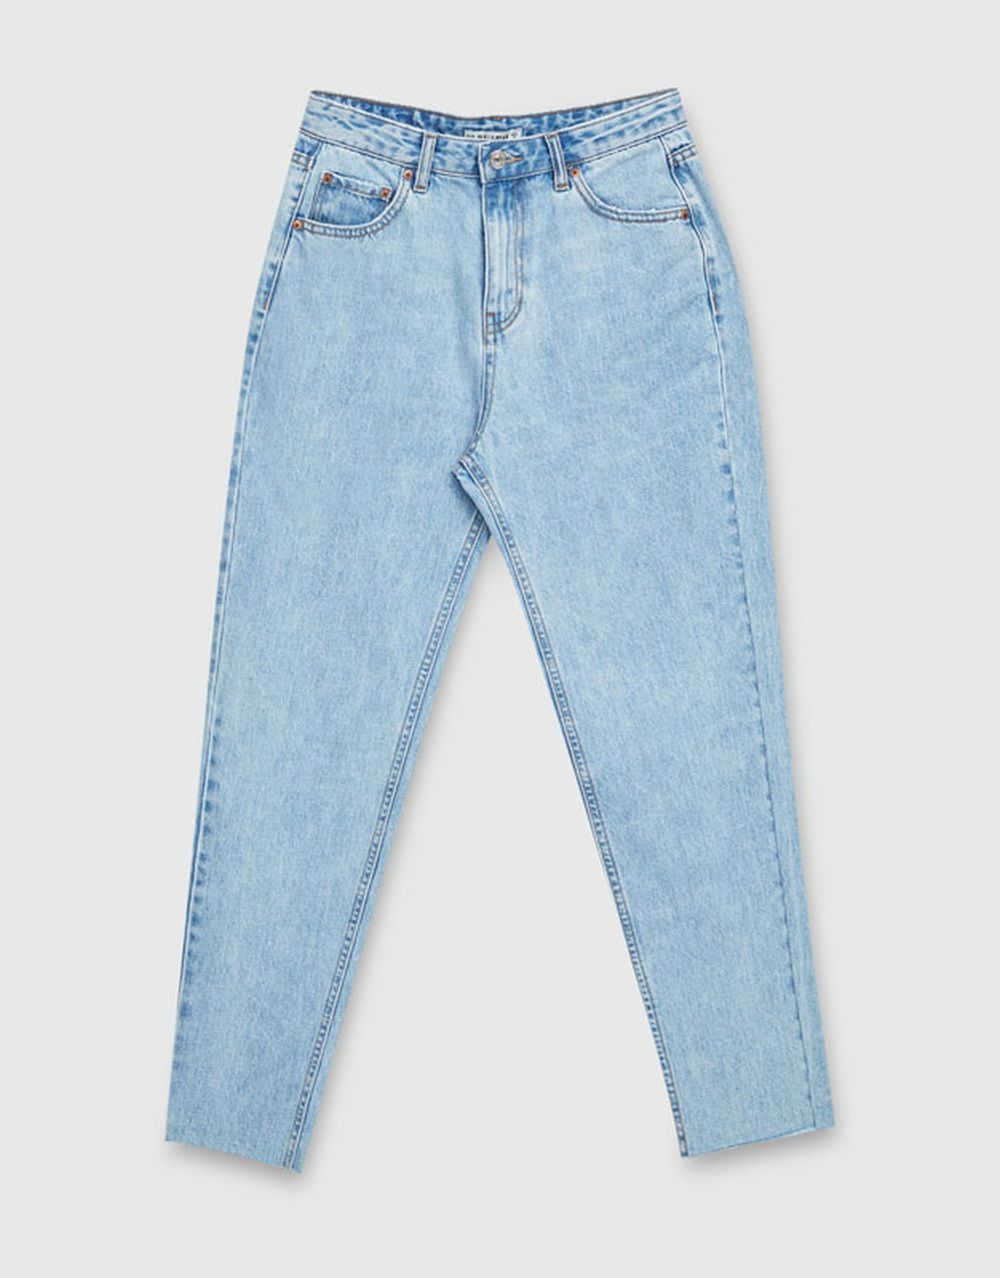 Jeans mom fit Pull&Bear (25,99 euros)